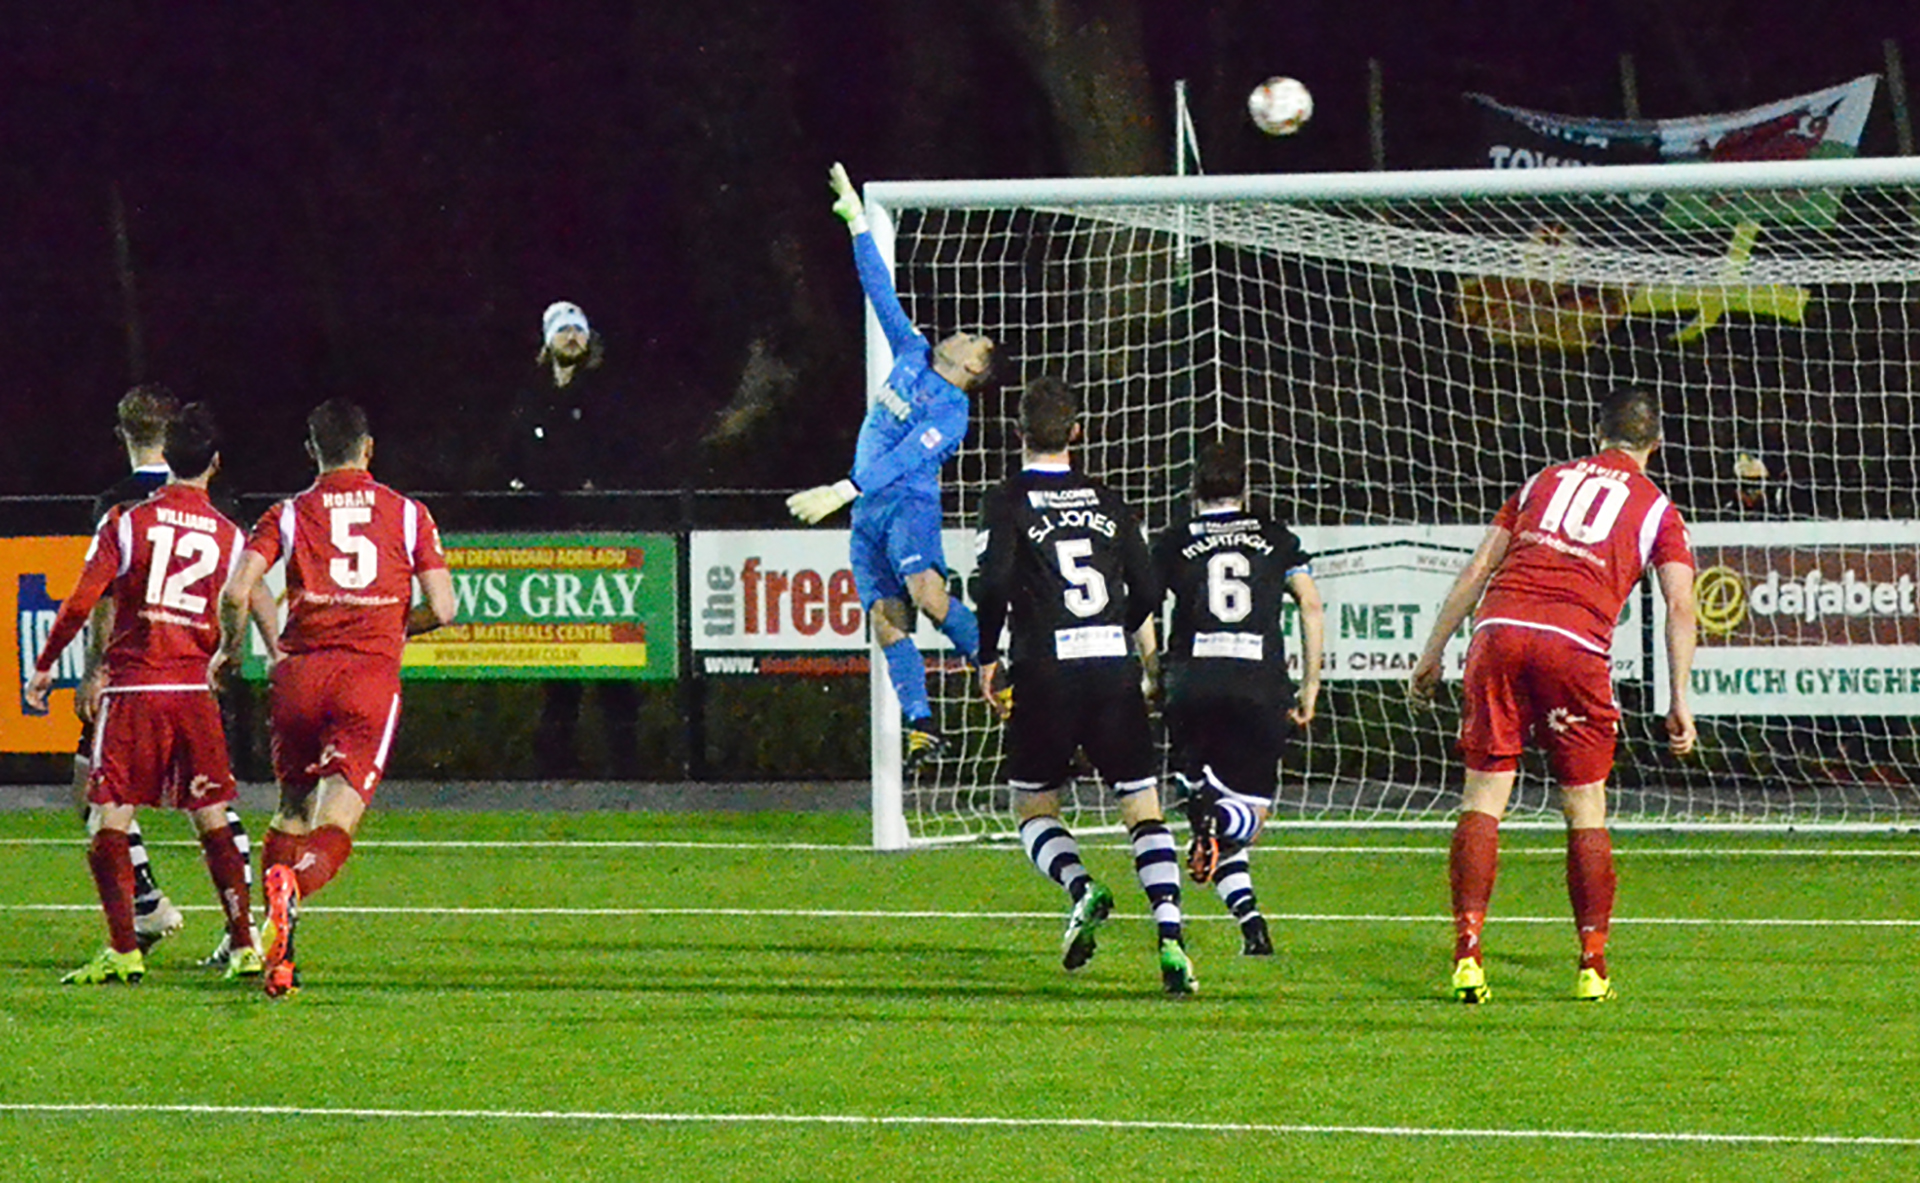 Nomads draw to stay second at Maes Tegid